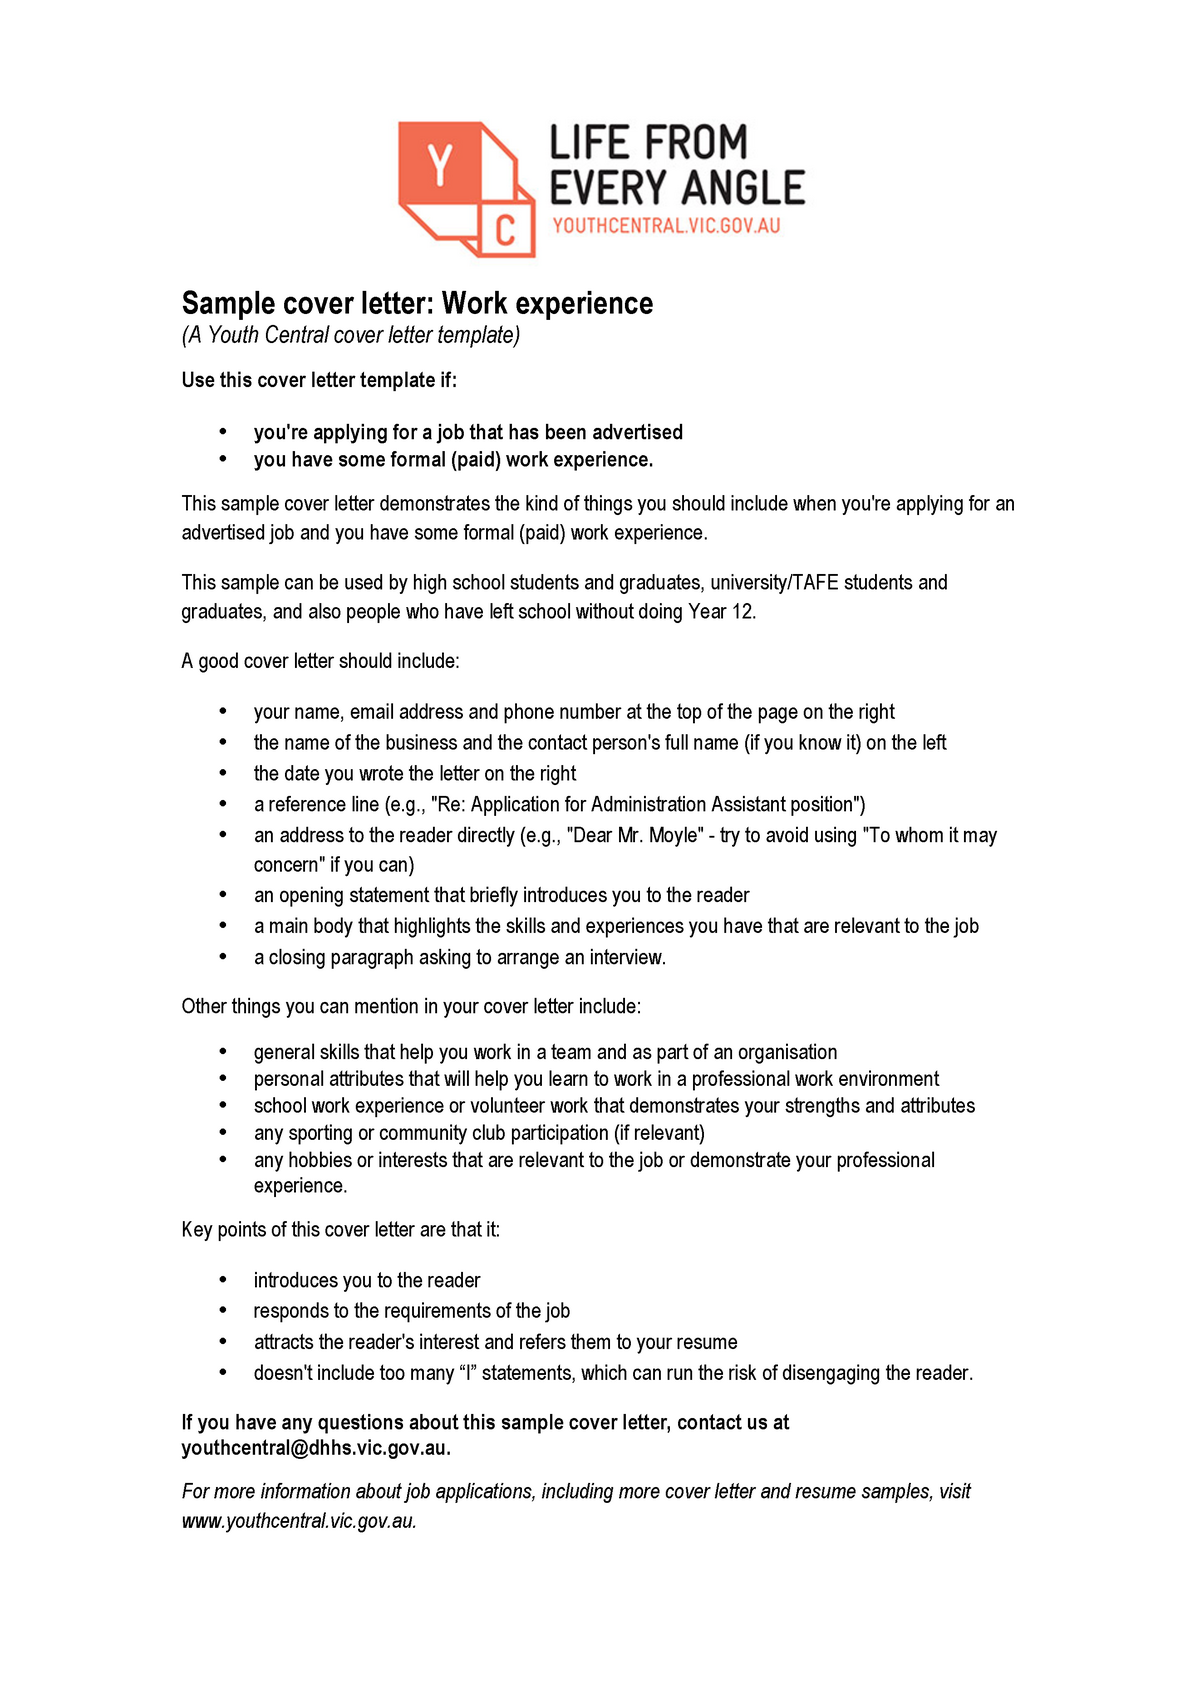 Youth Central Cover Letter Work Experience - 7503BPS - StuDocu